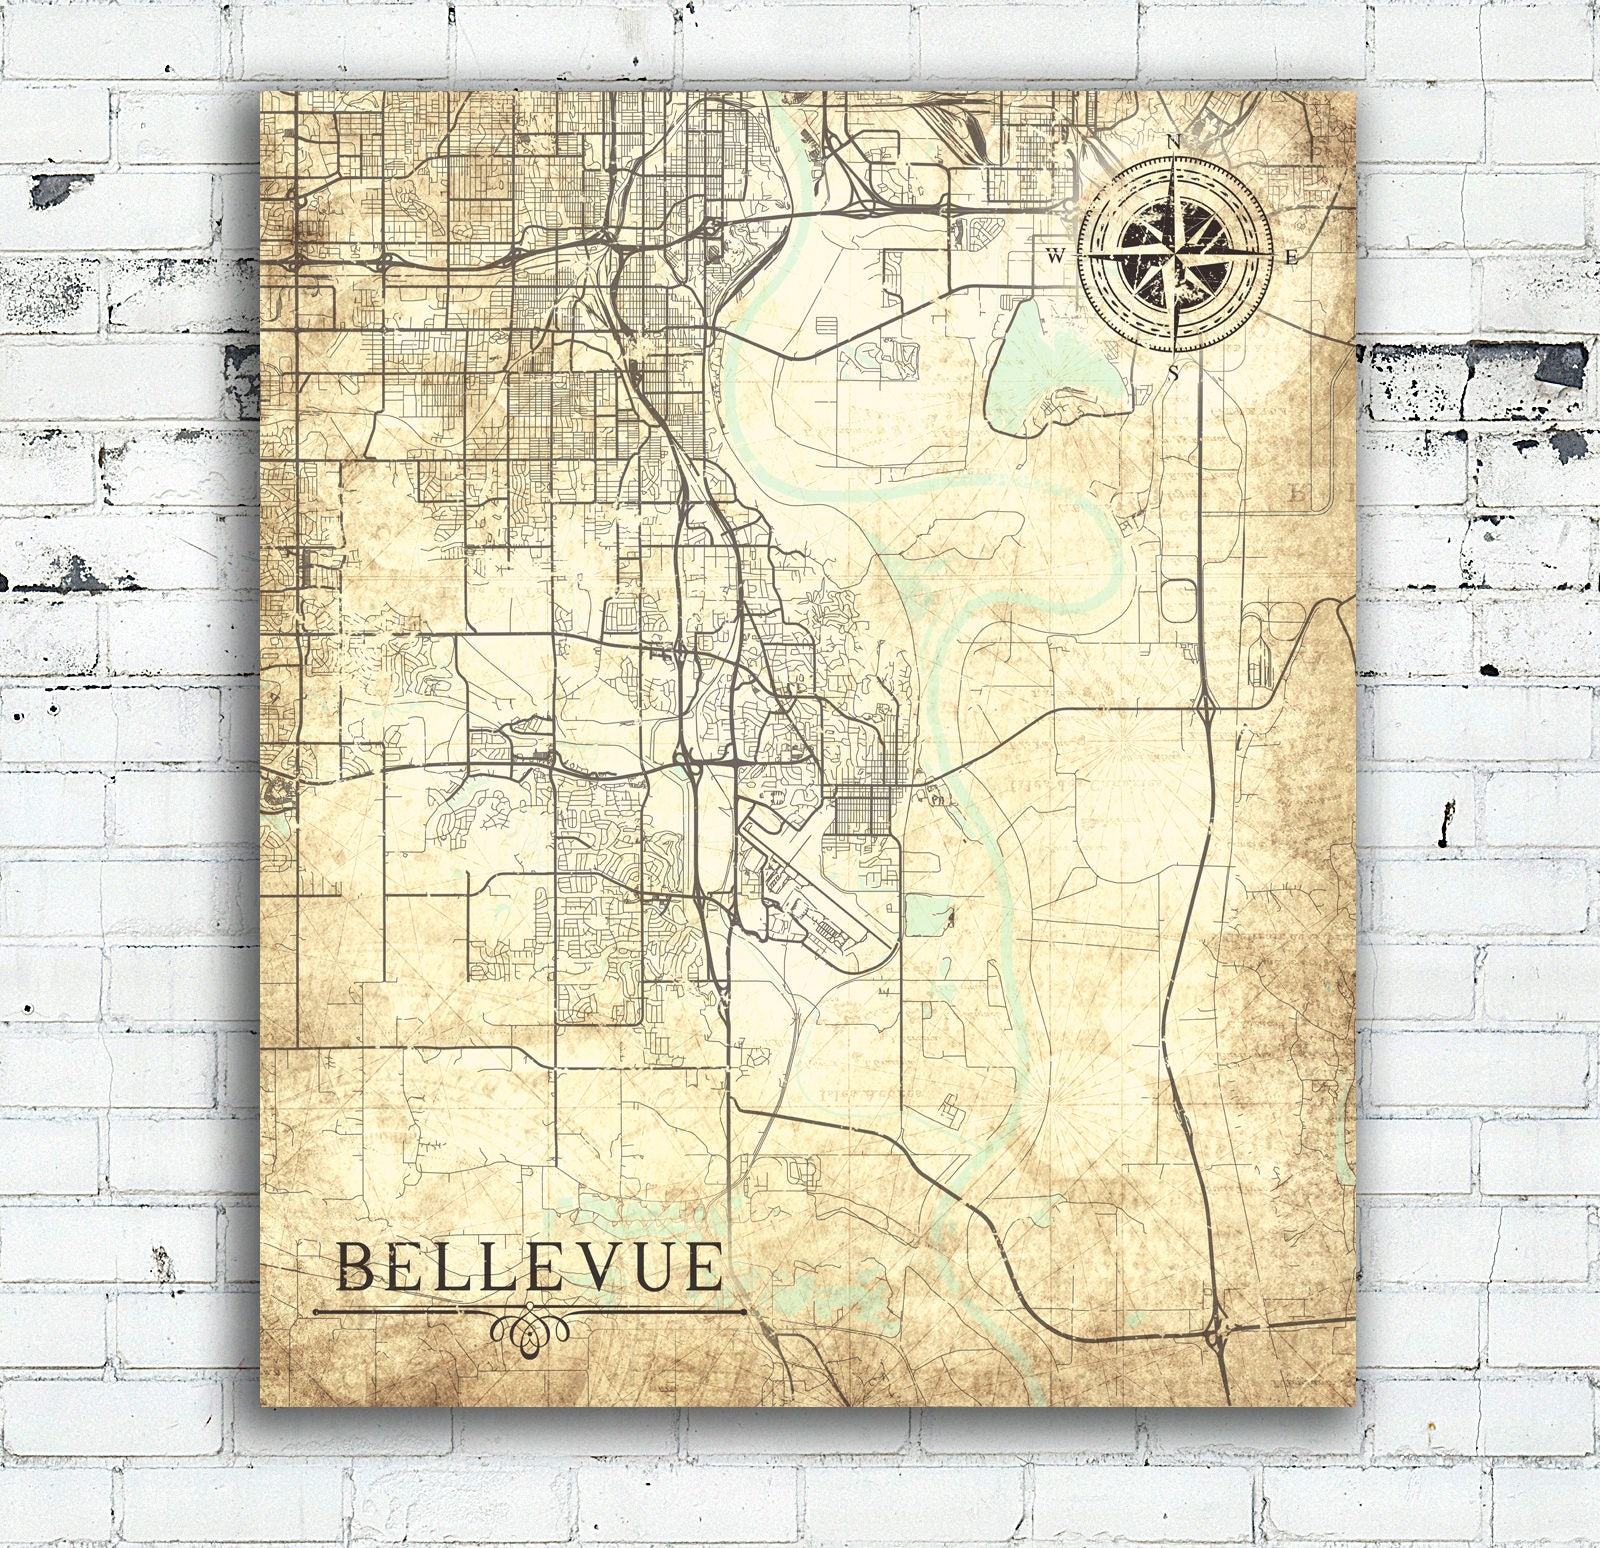 BELLEVUE NE Canvas Print Nebraska City Town Plan Vintage map Wall